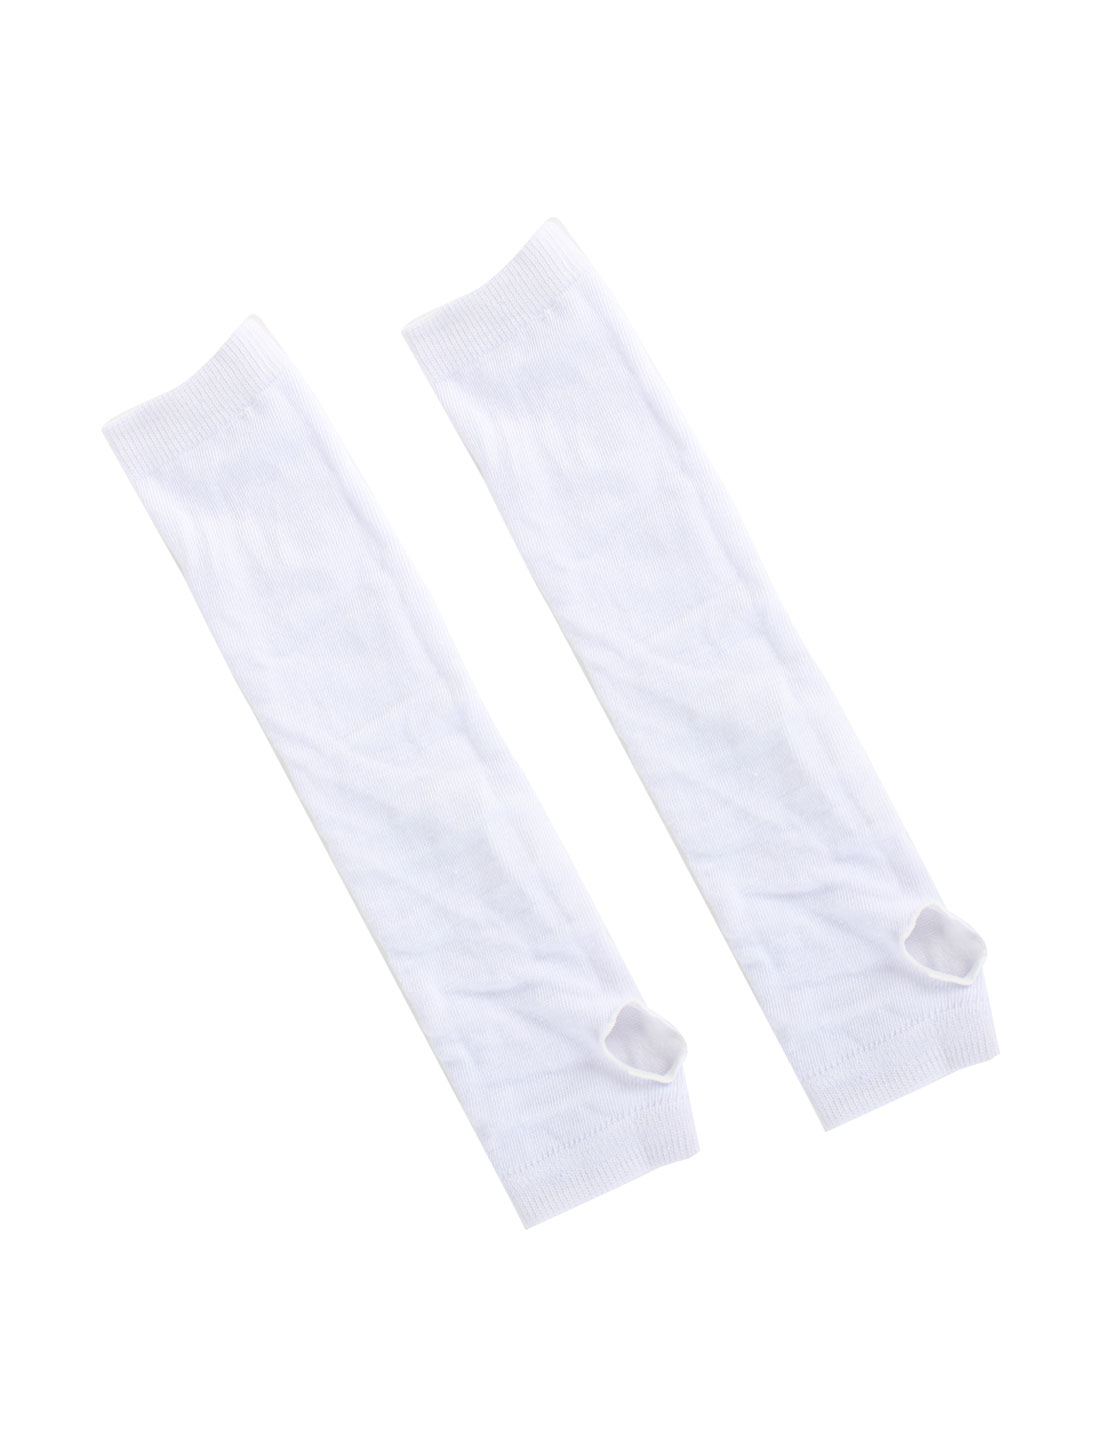 Women Lady White Elastic Thumbless Fingerless Arm Warmers Gloves Pair